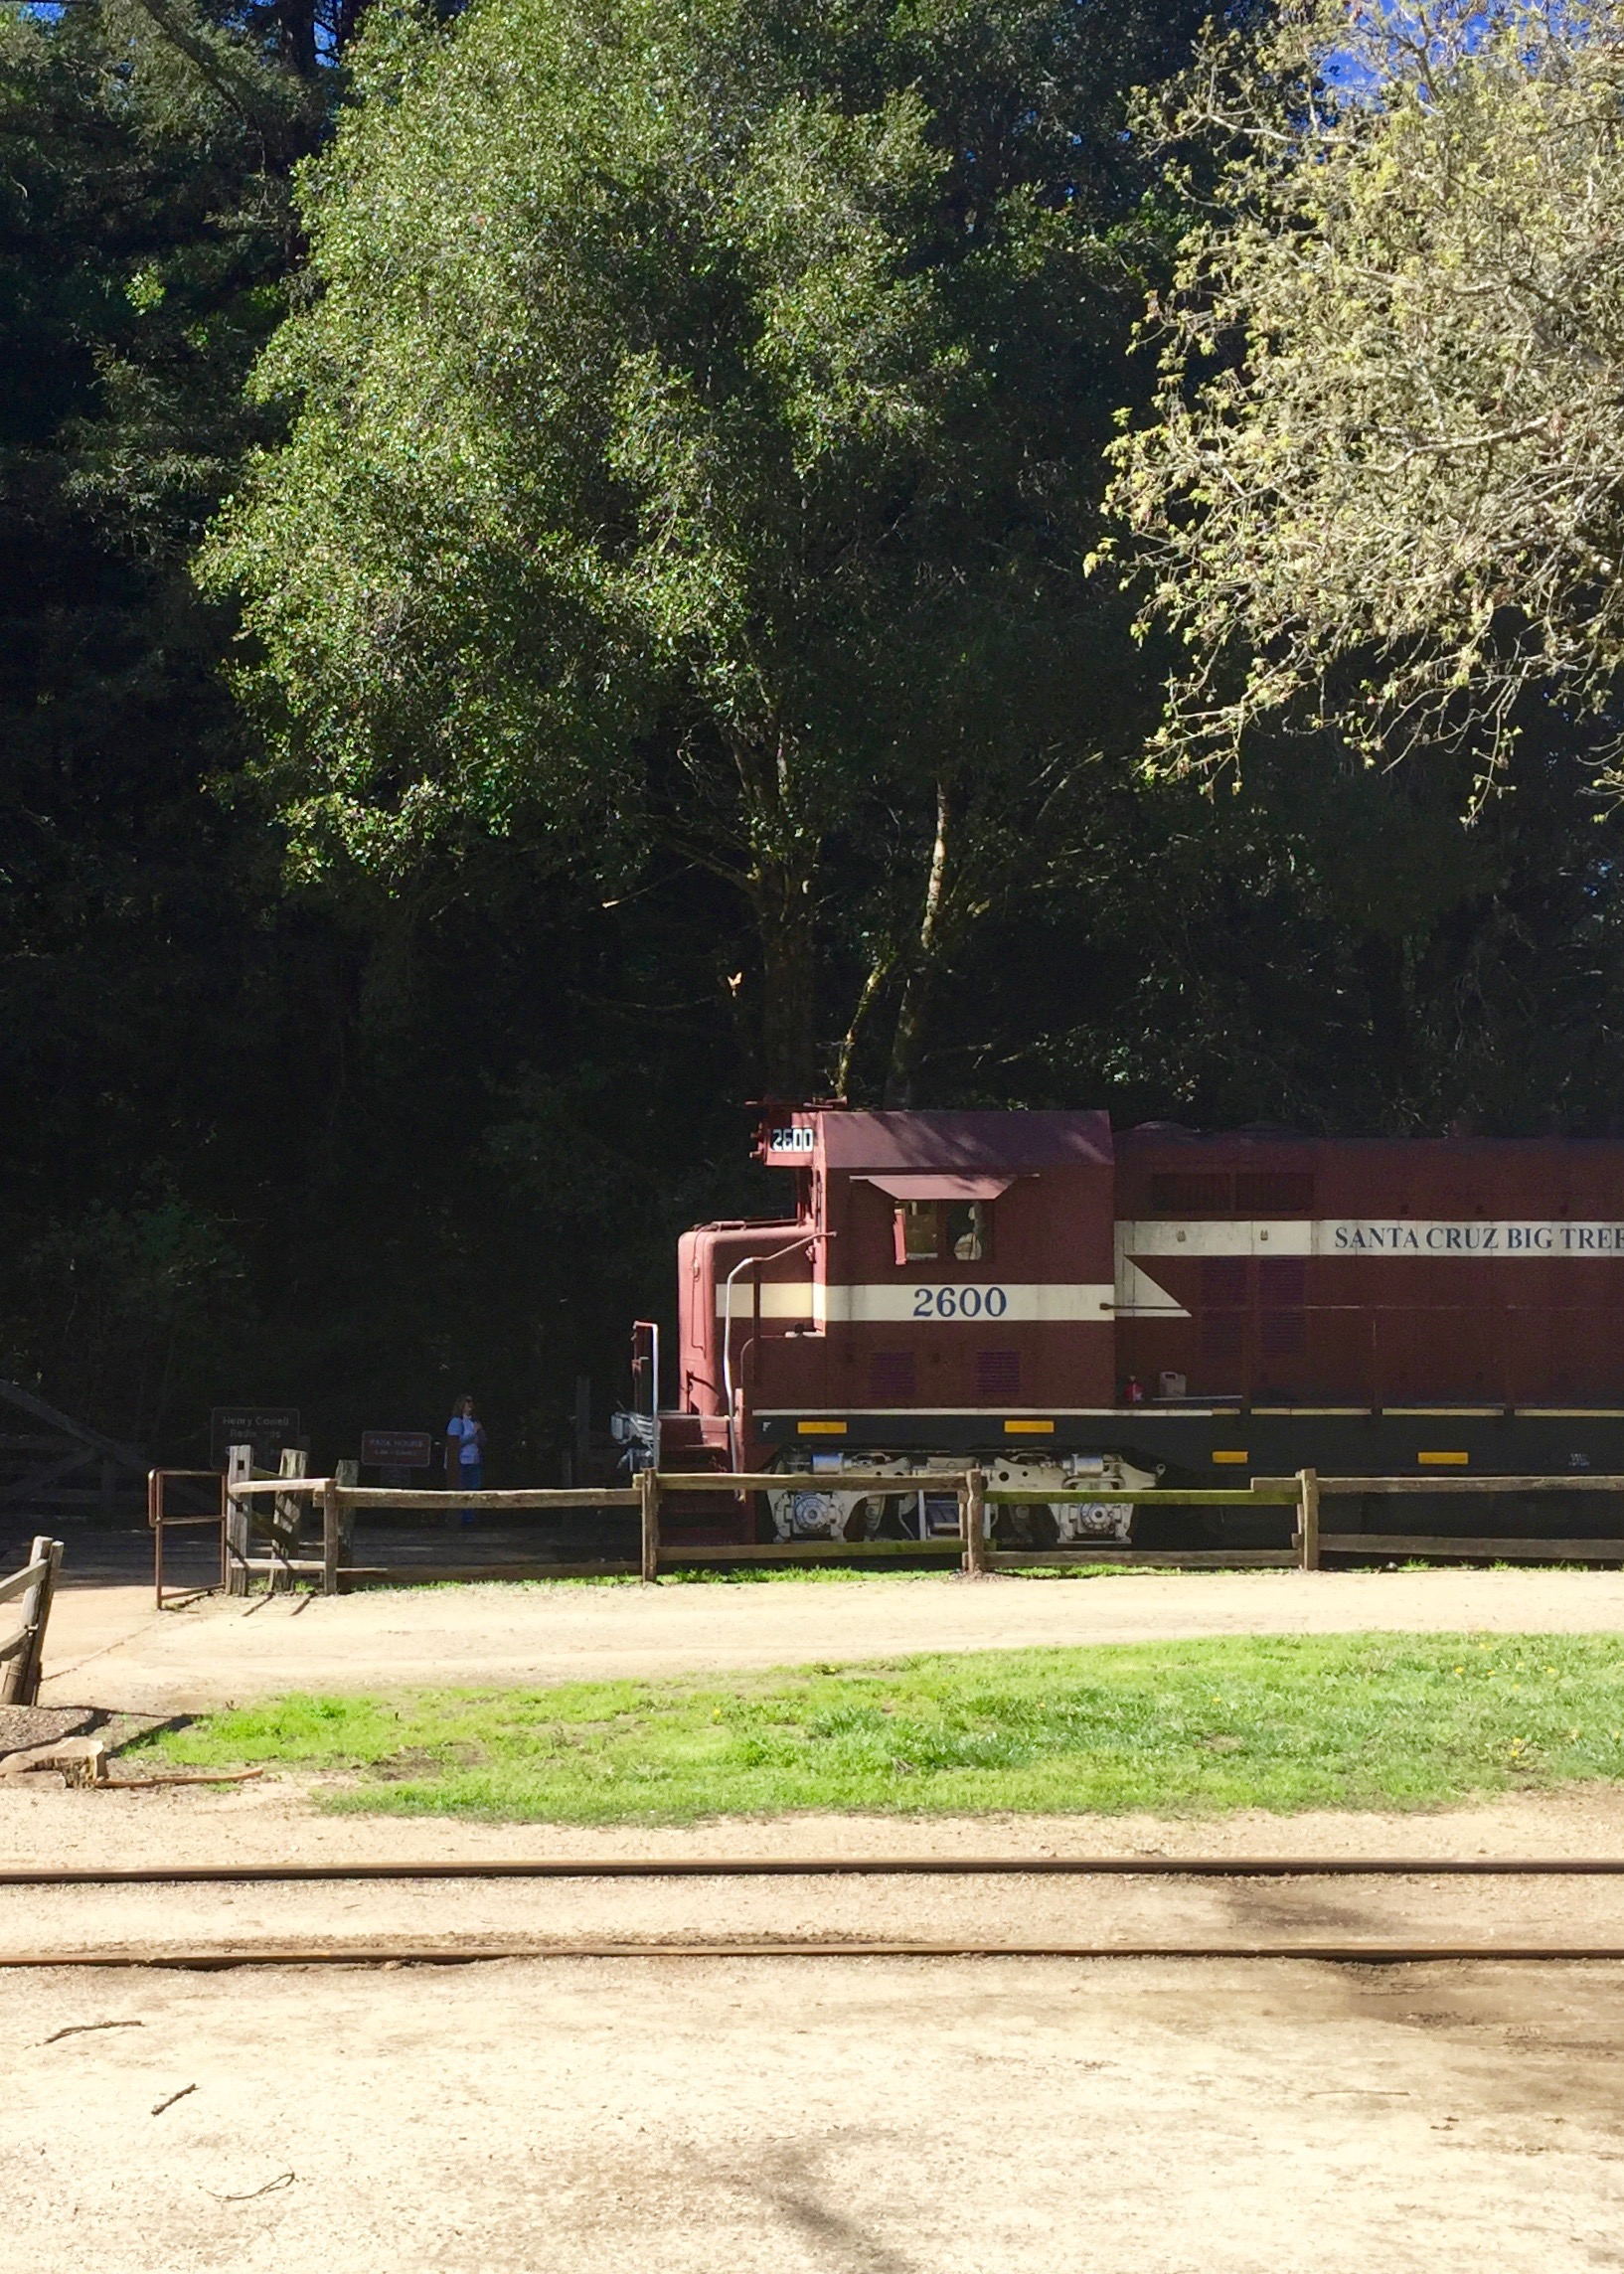 Roaring Camp Railroads - Simple Sojourns